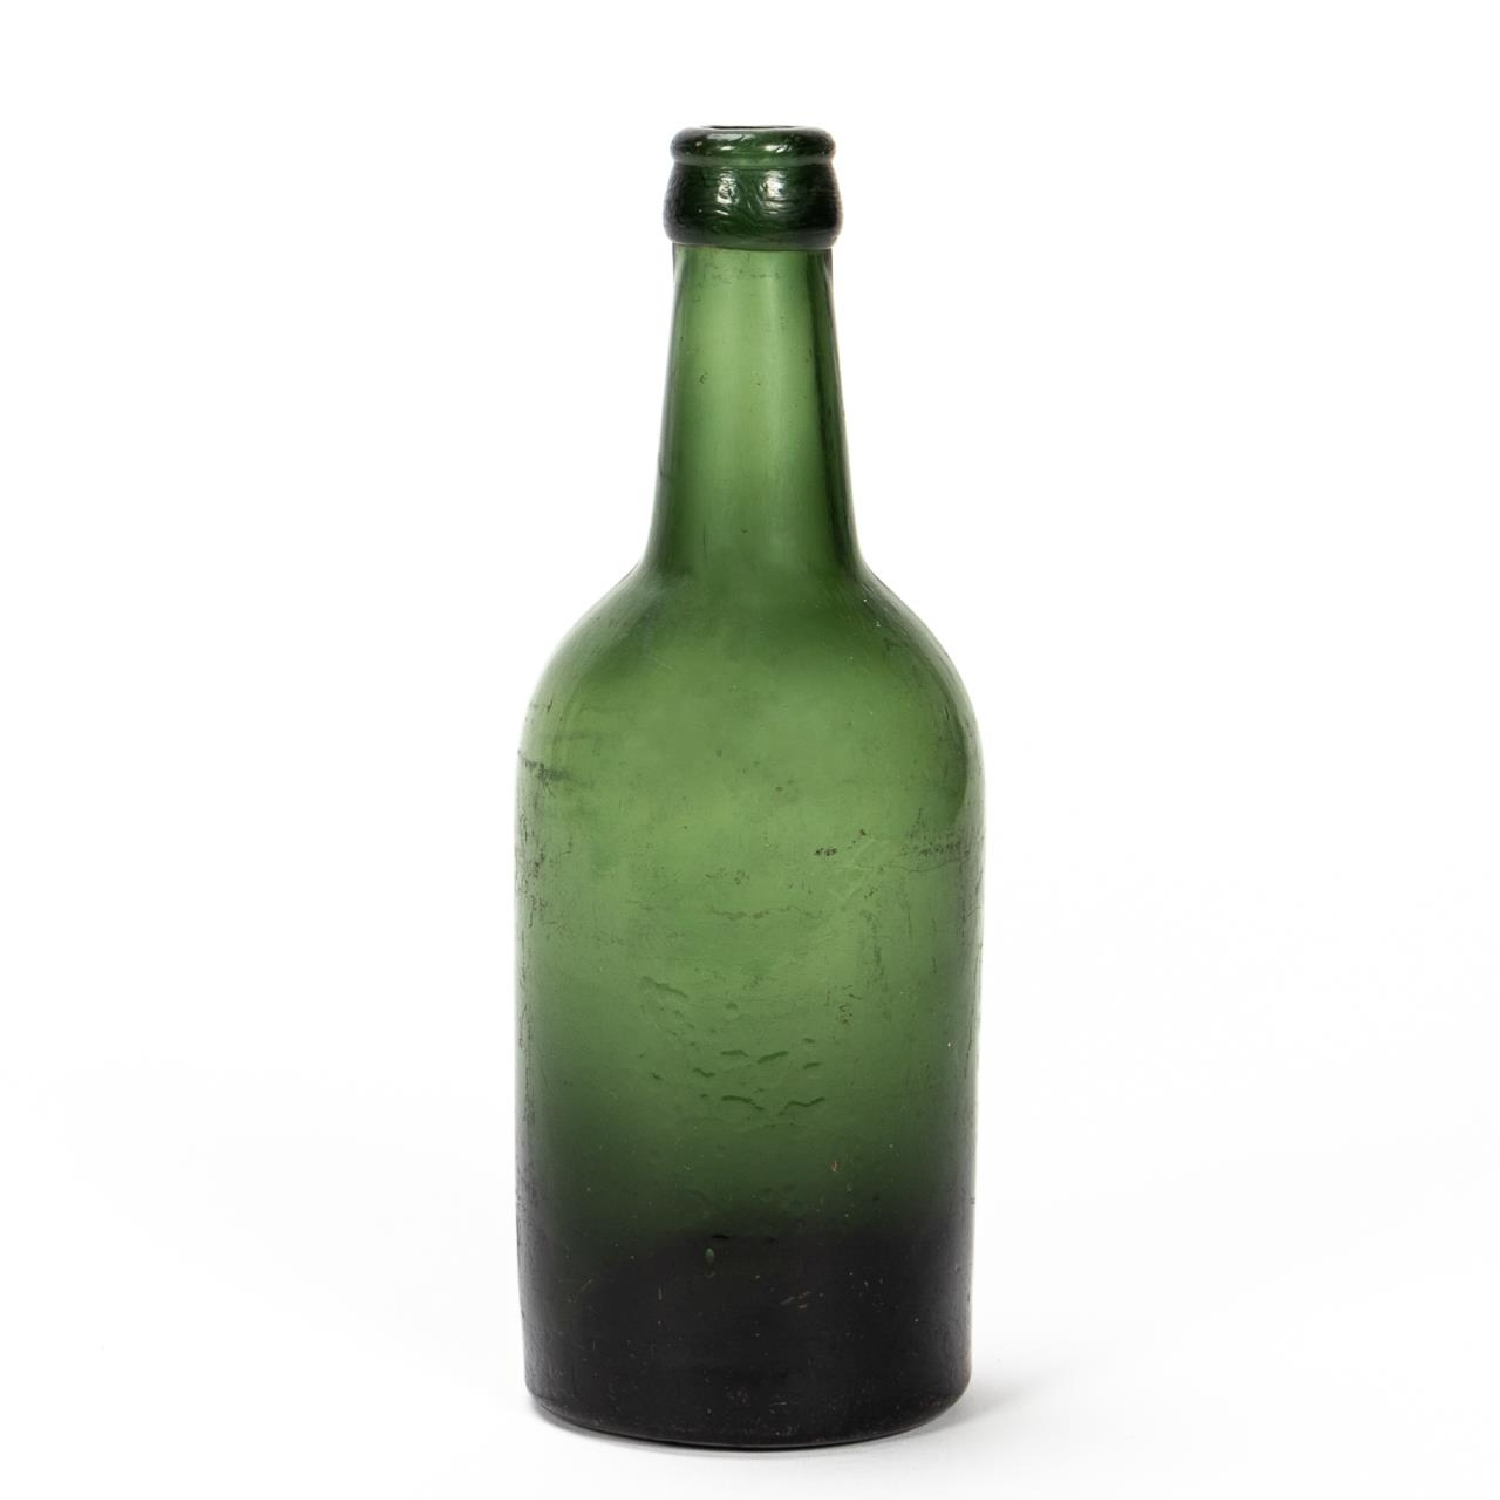 RMS CARPATHIA, SALVAGED GREEN GLASS BEER BOTTLE - Image 3 of 5